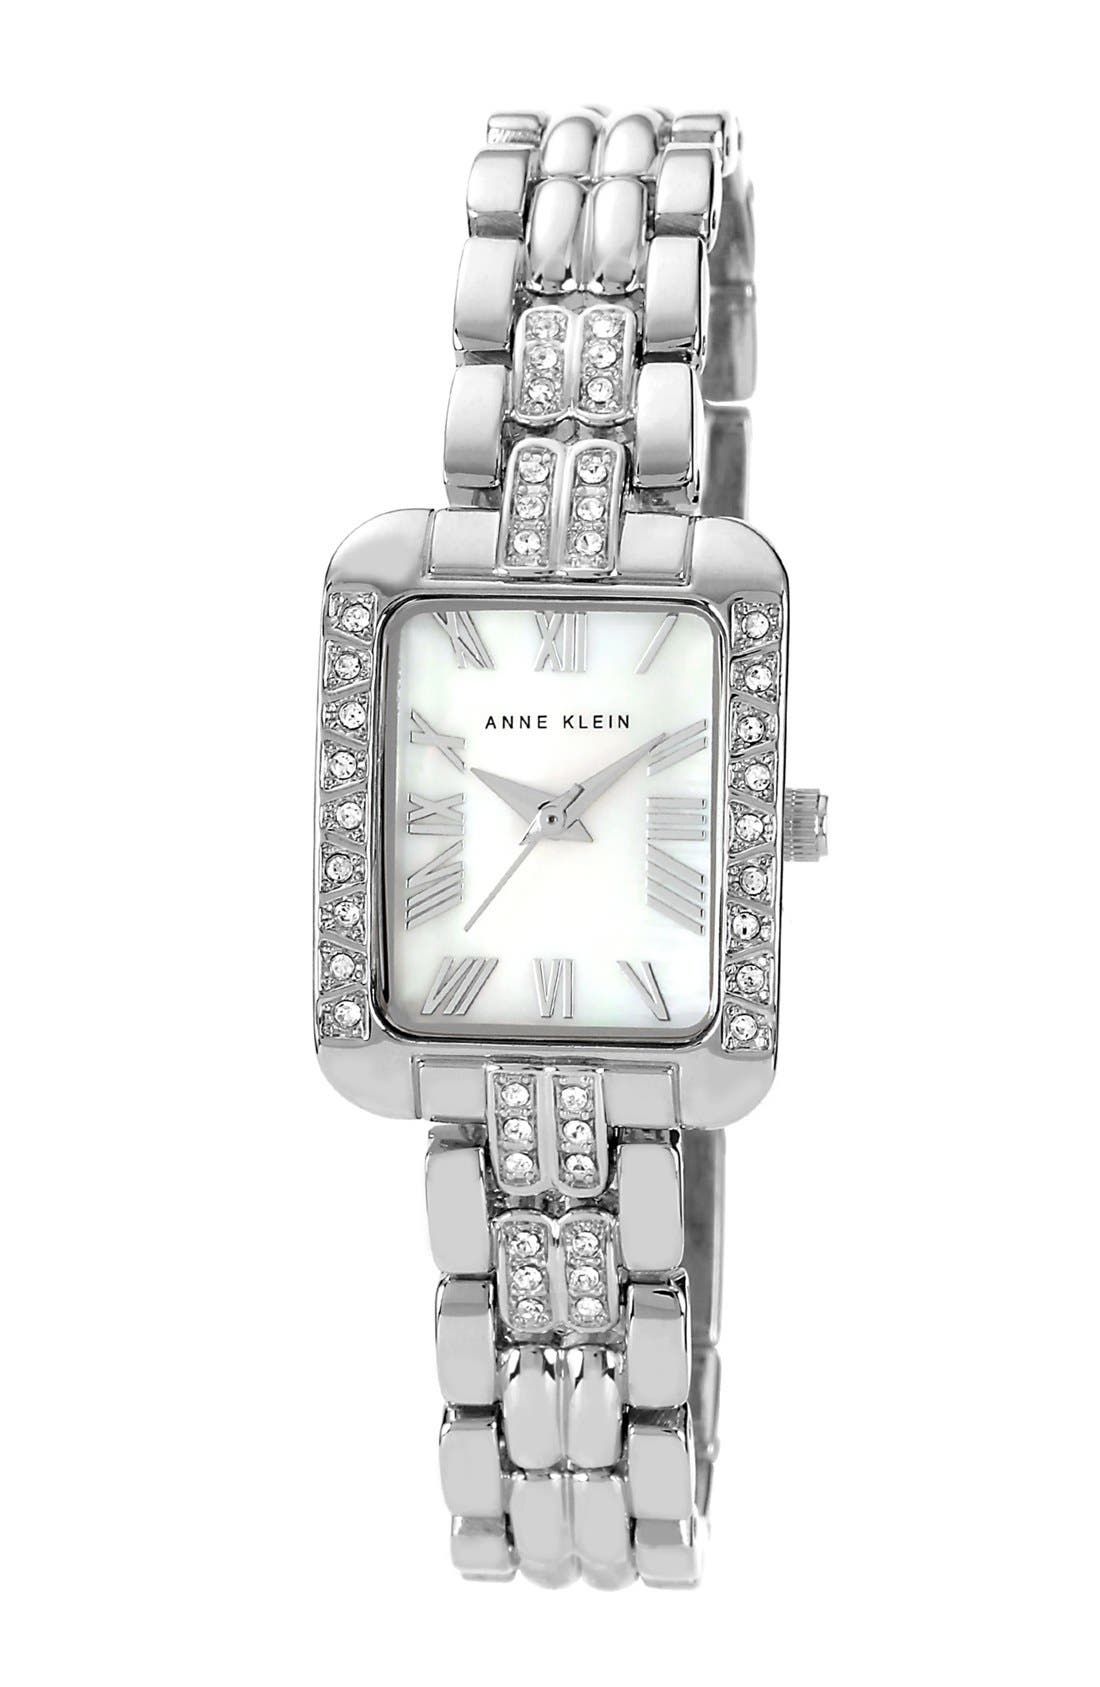 Main Image - Anne Klein Rectangular Case Bracelet Watch, 22mm x 28mm